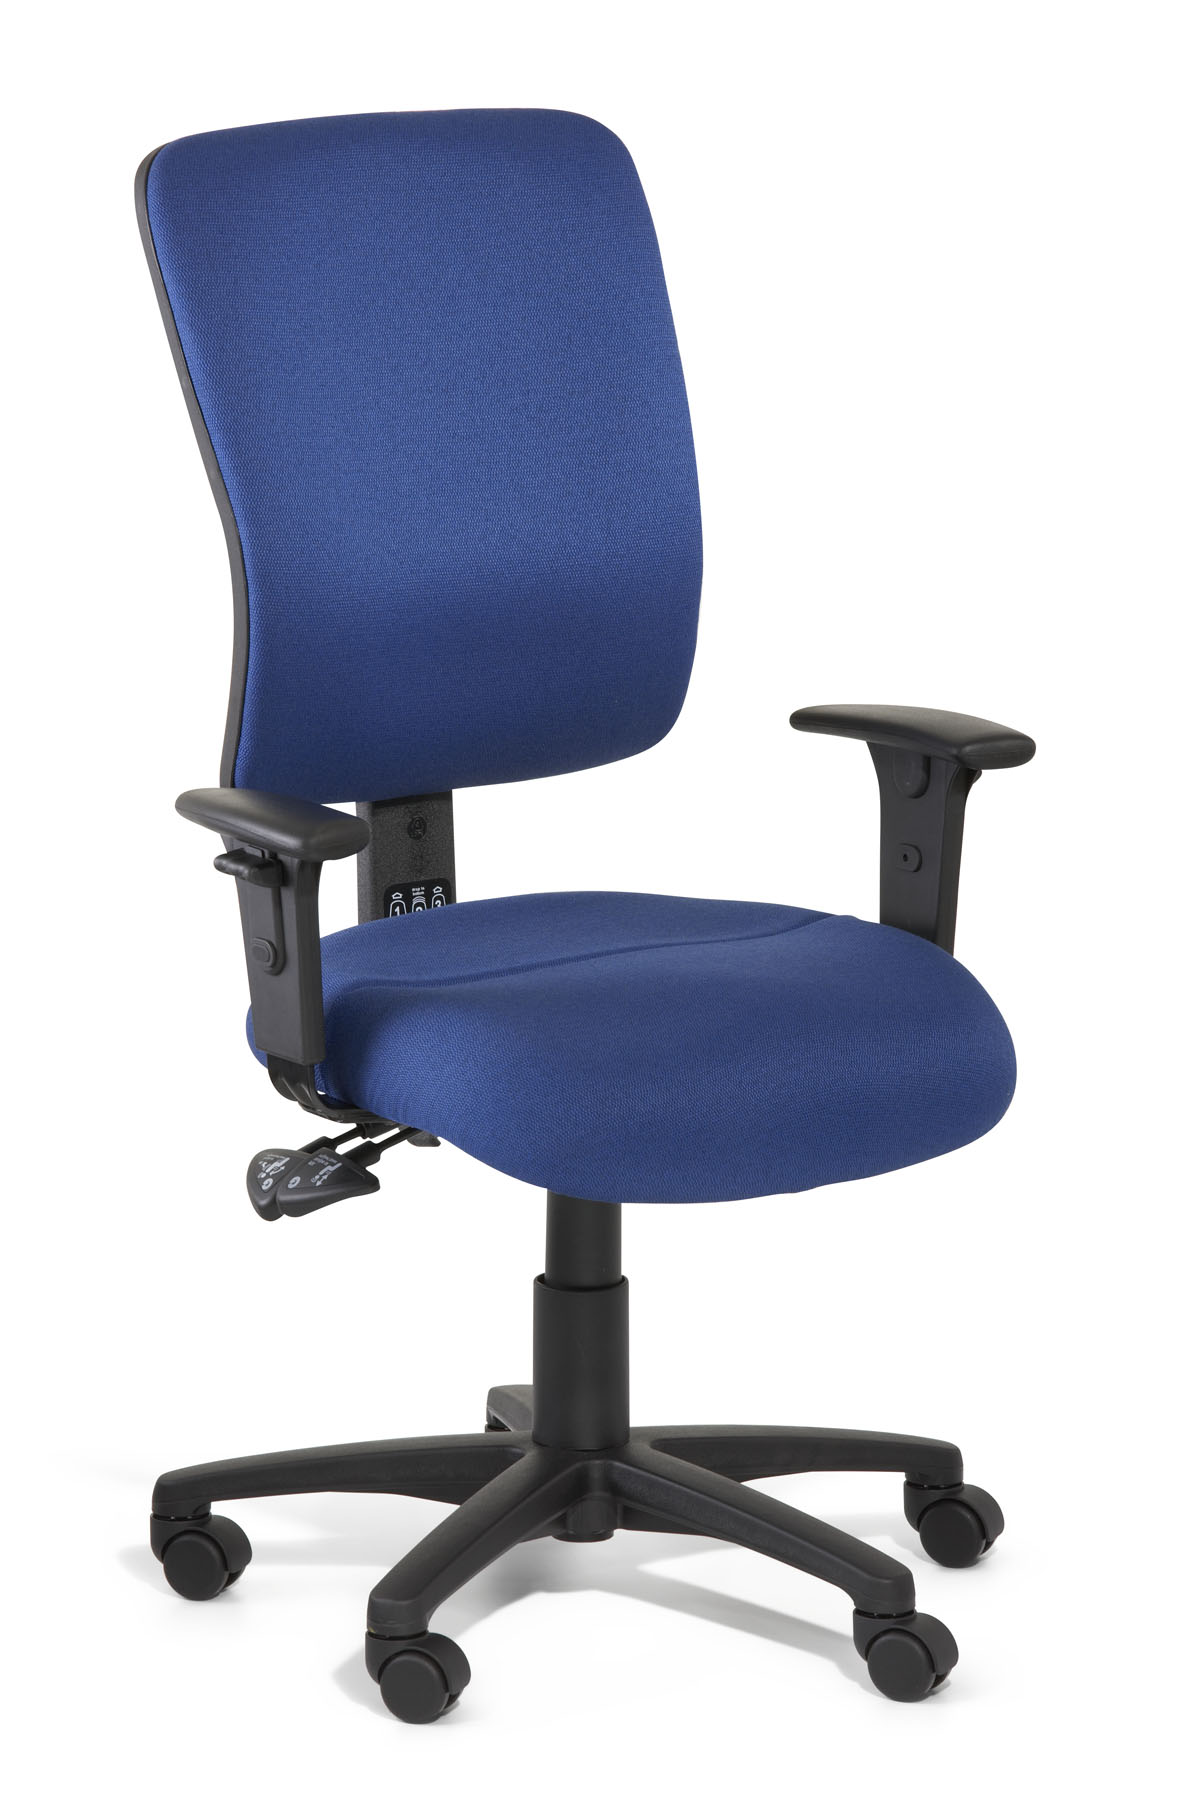 Gregory Ergonomic fice Chair Range from BuyDirect line